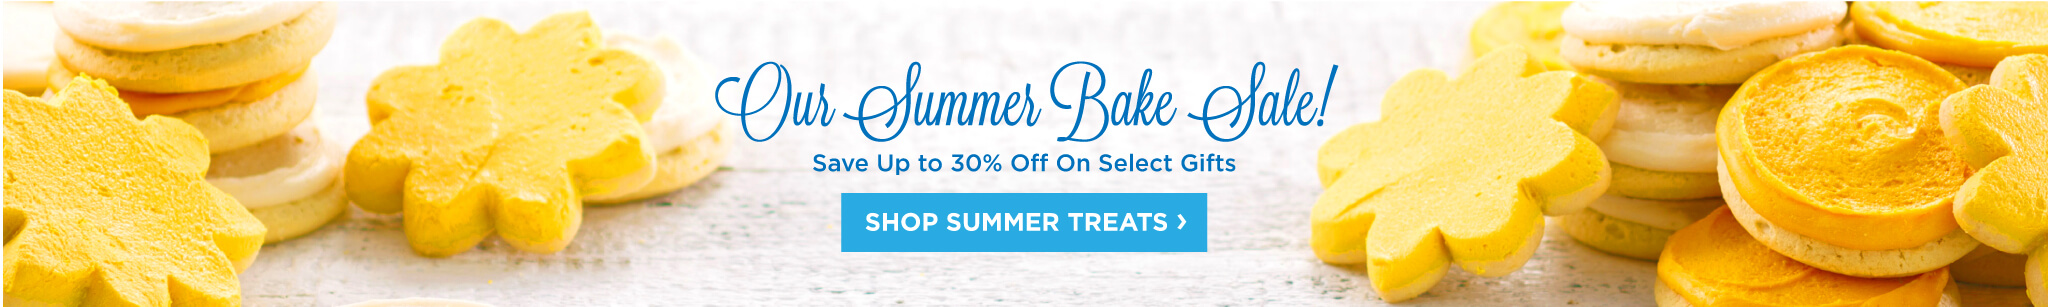 Our Summer Bake Sale - Save Up to 30% Off On Select Gifts